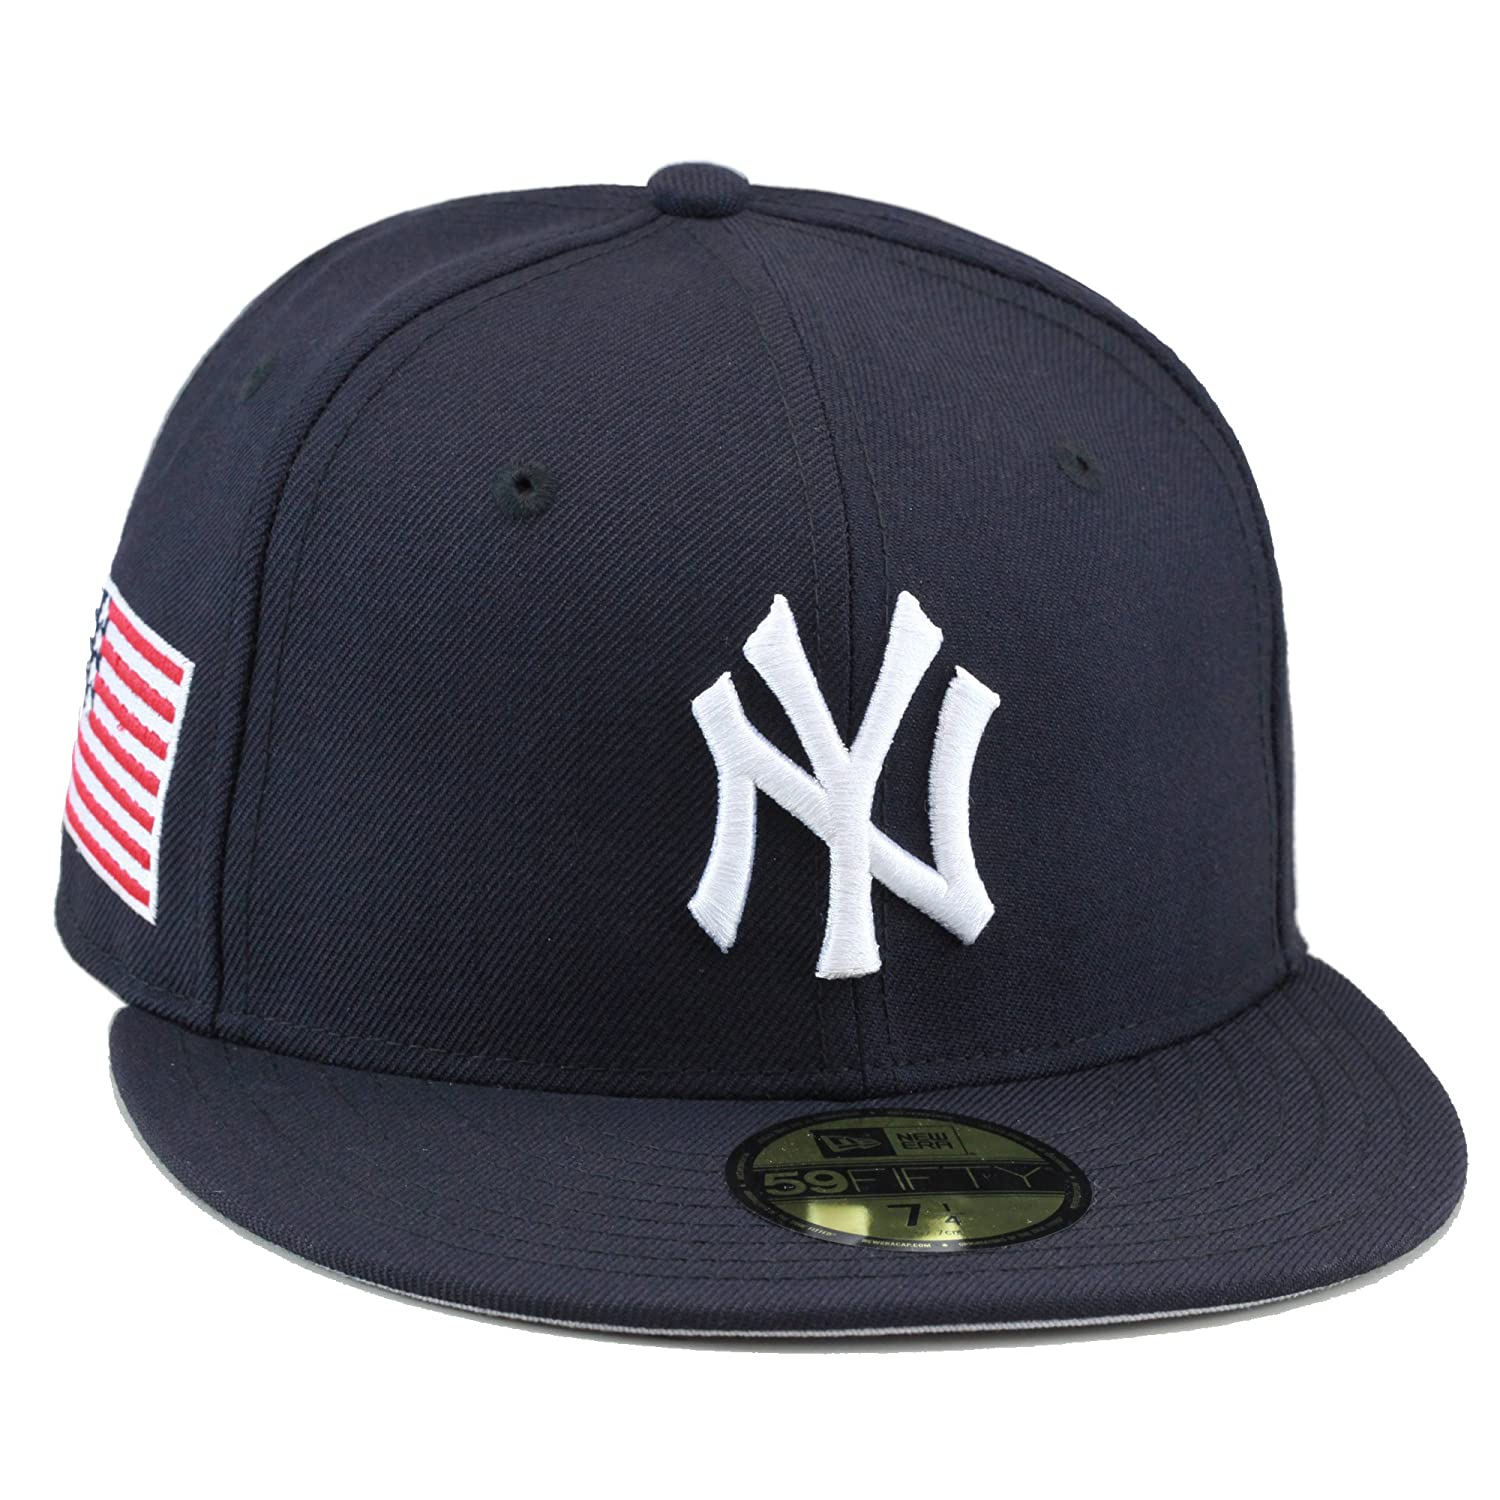 6a778b62e94a0 best price new era new york yankees fitted hat navy usa us american flag  yankees a0ed1